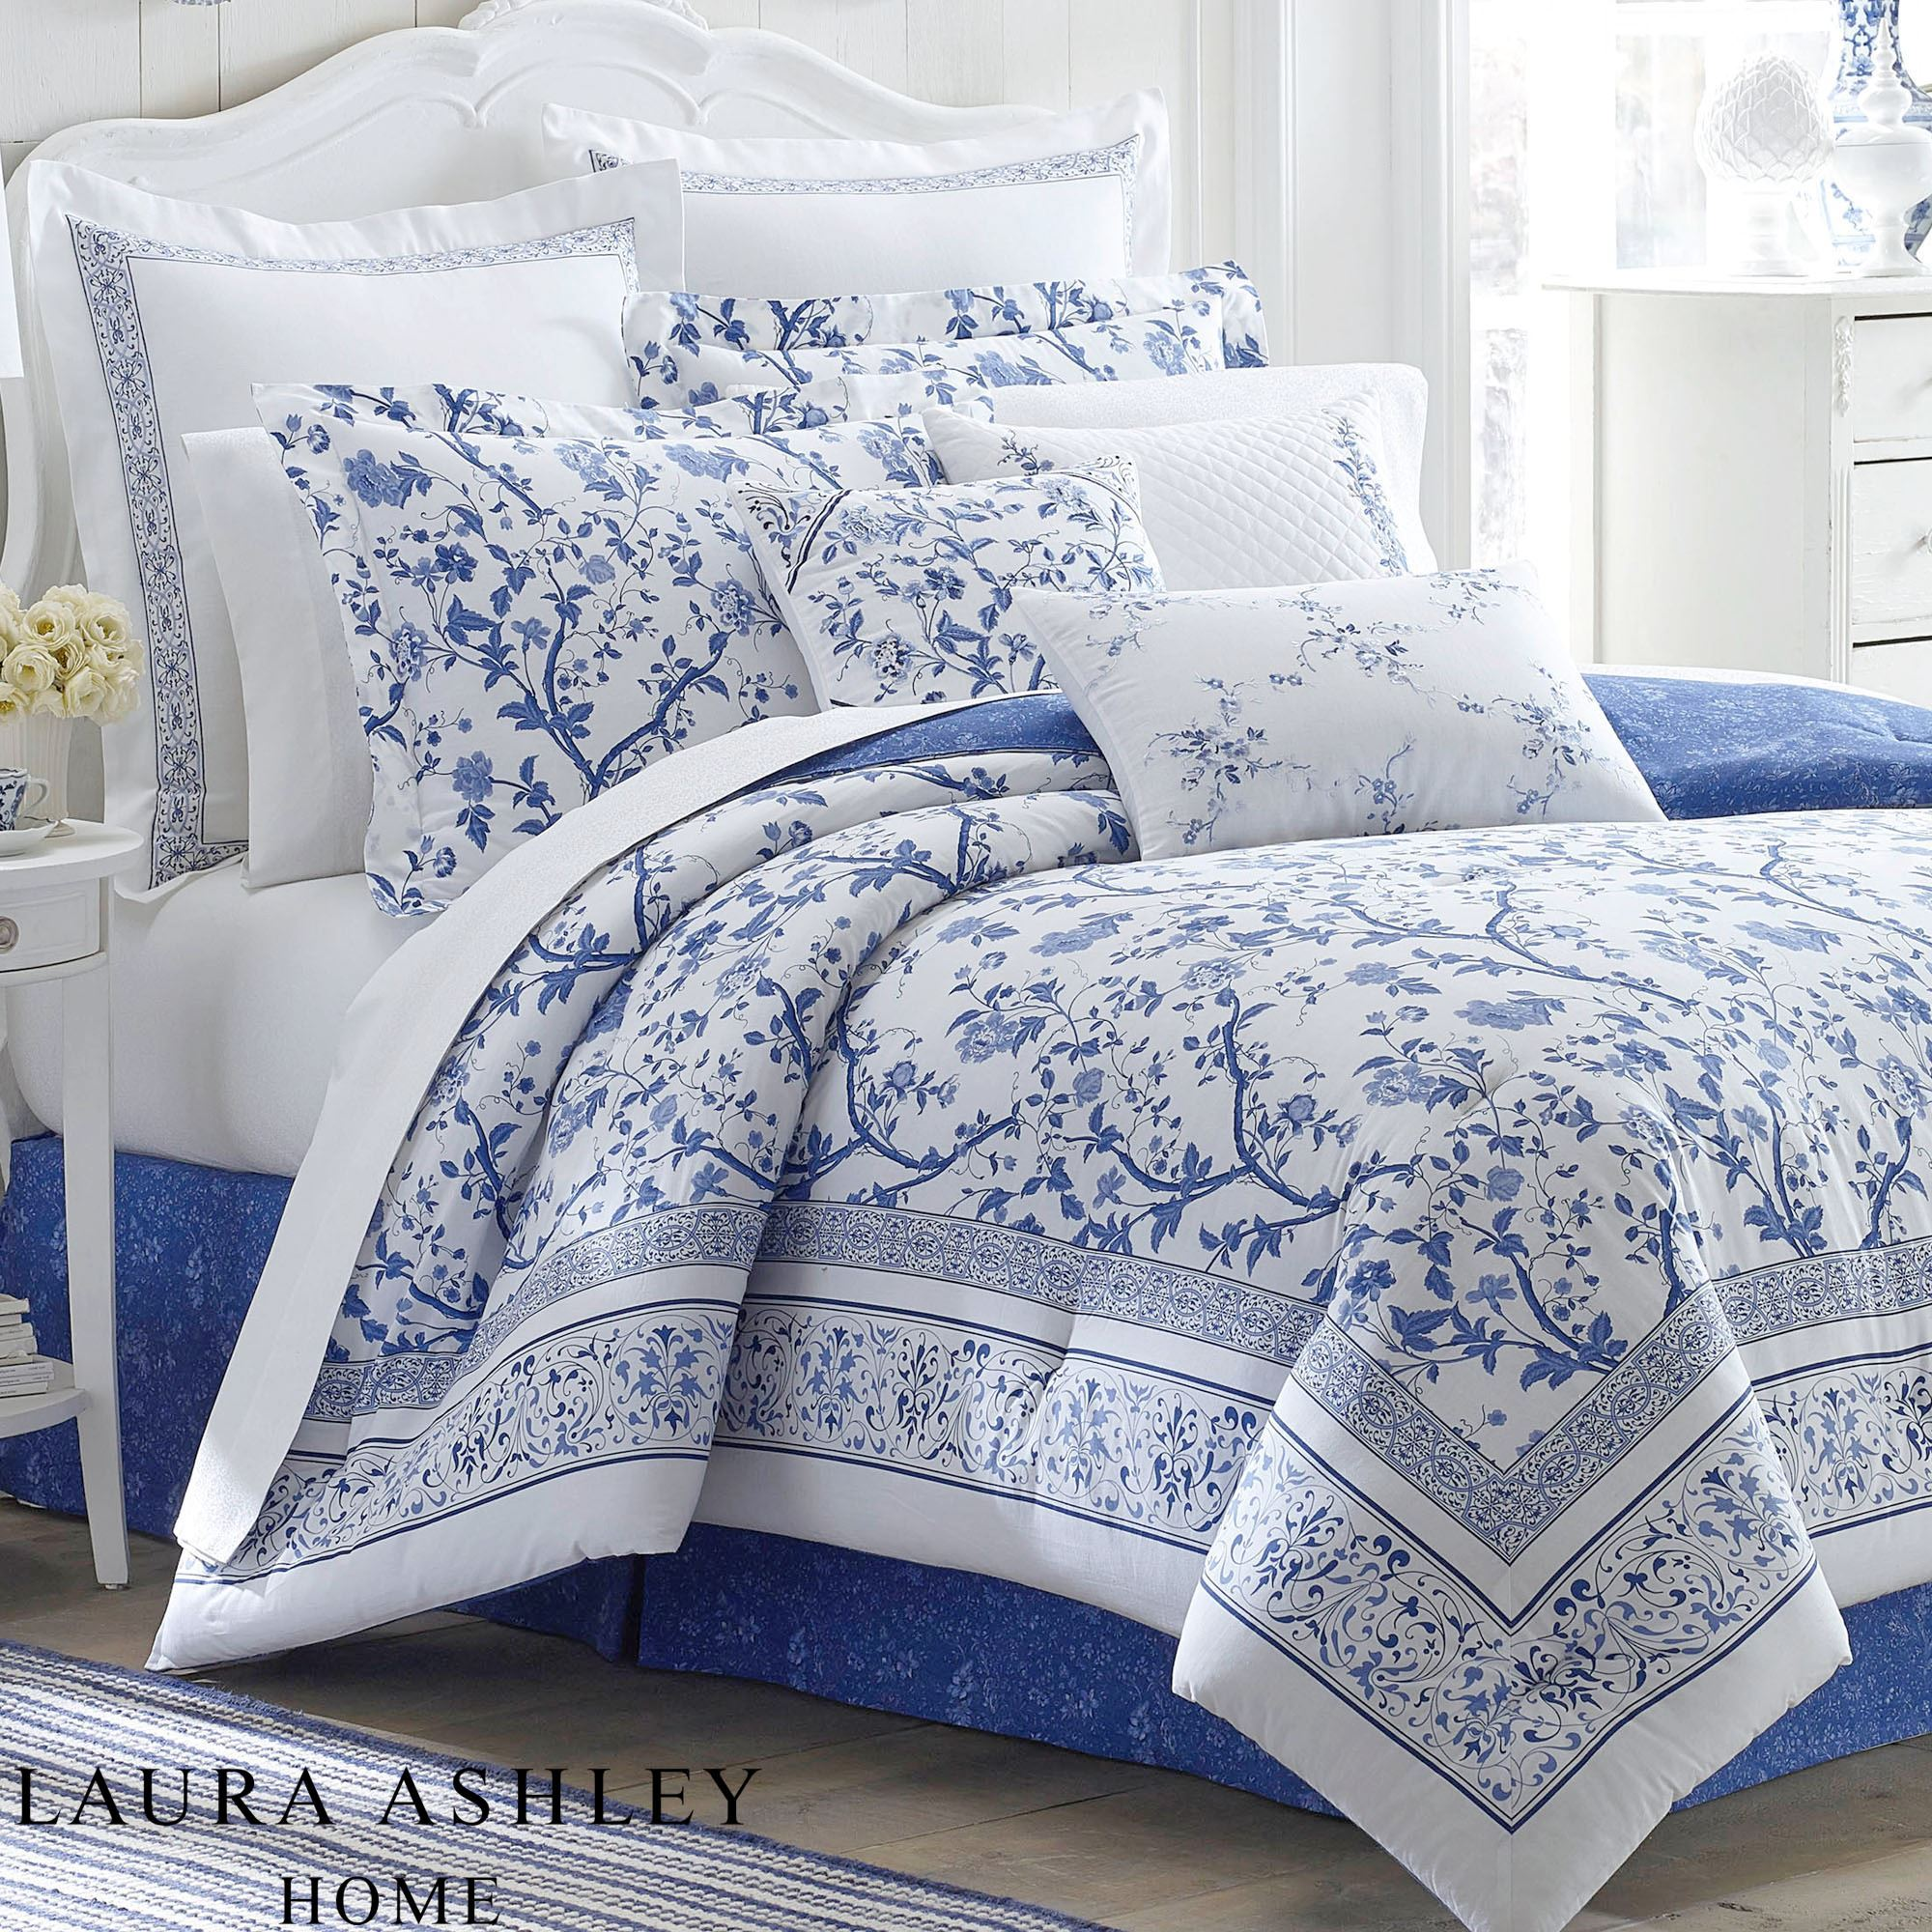 Charlotte Blue and White Floral Comforter Bedding by Laura Ashley : laura ashley king quilt - Adamdwight.com